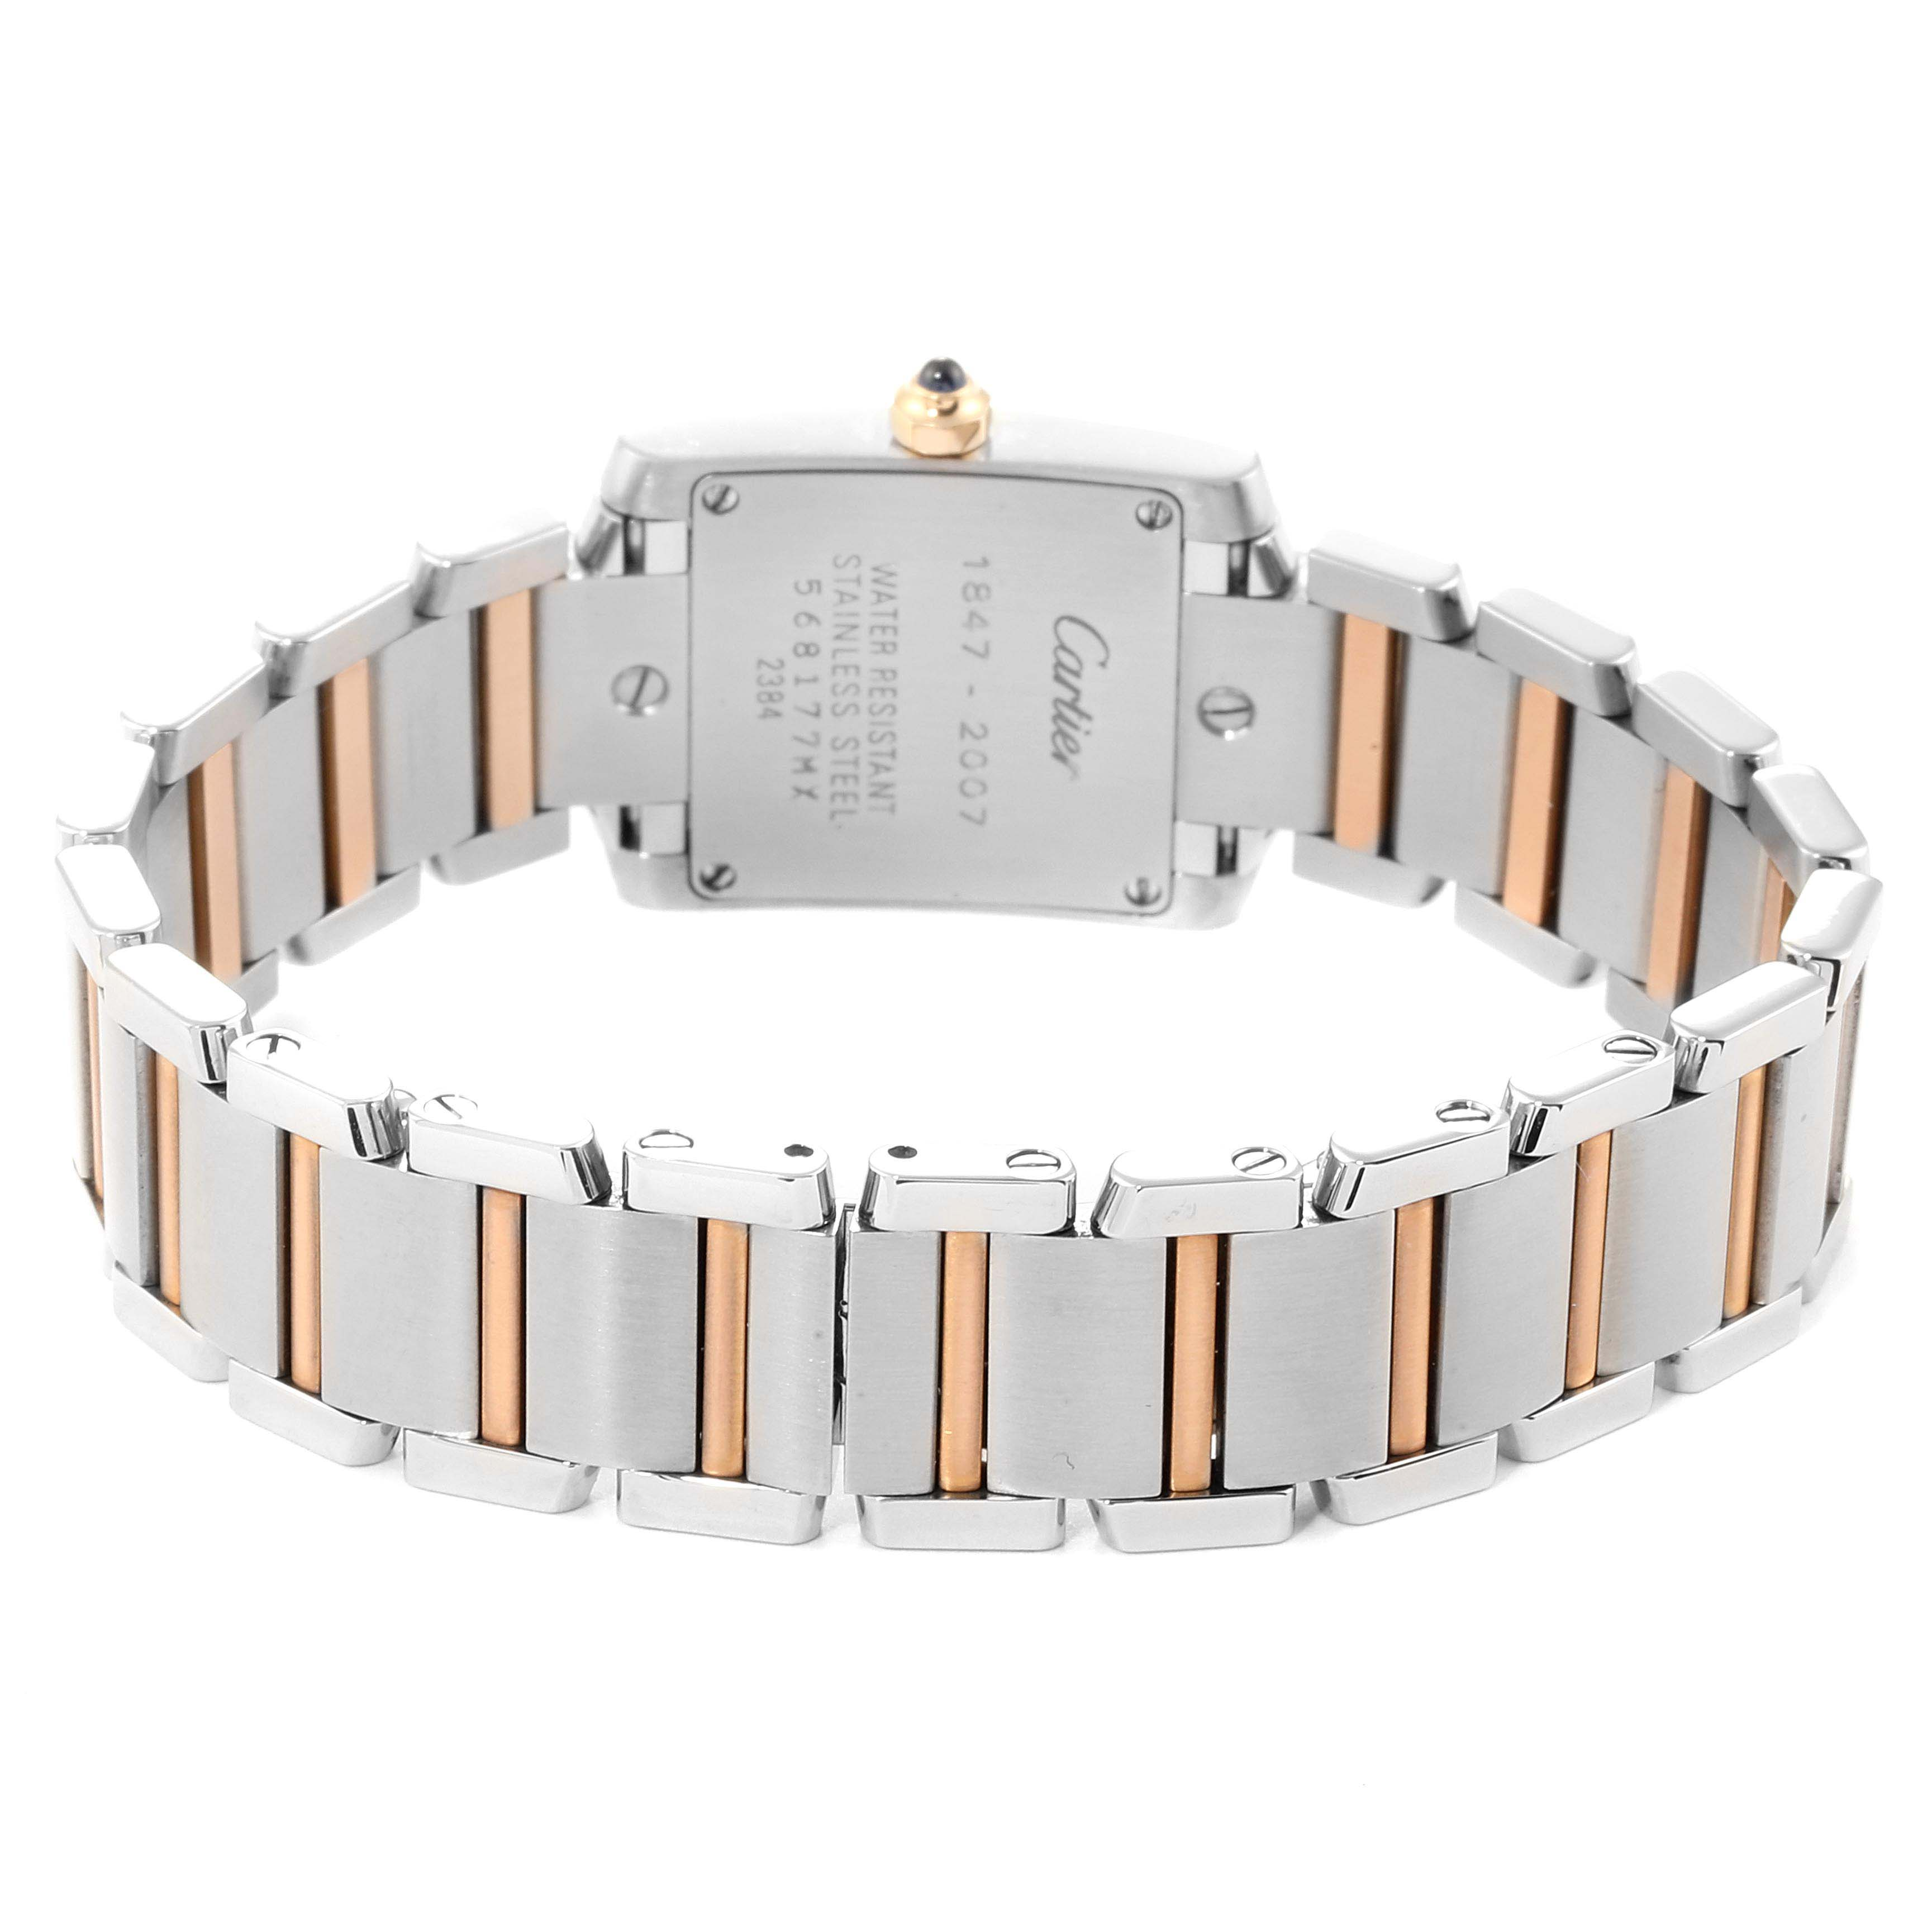 Cartier Tank Francaise Steel Rose Gold 160th Anniversary Watch W51036Q4 SwissWatchExpo